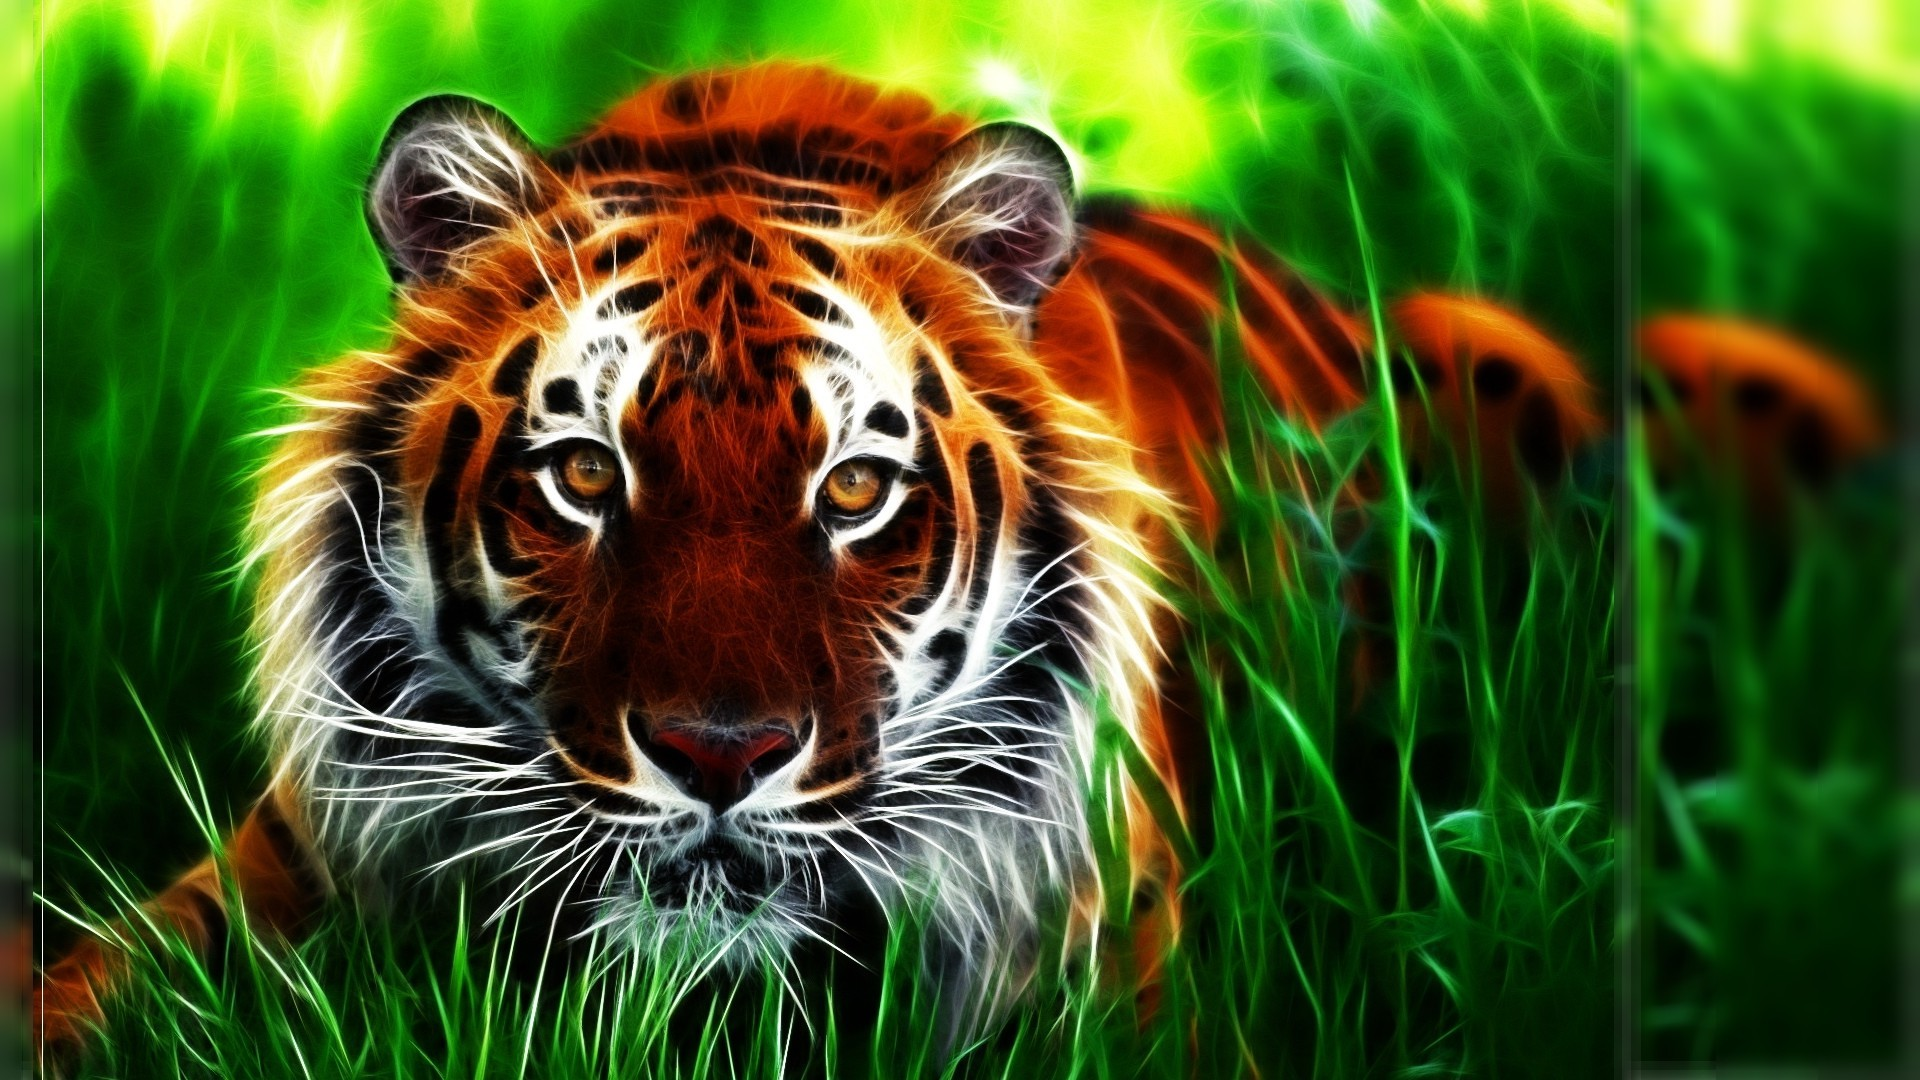 tiger background ·① download free beautiful full hd wallpapers for